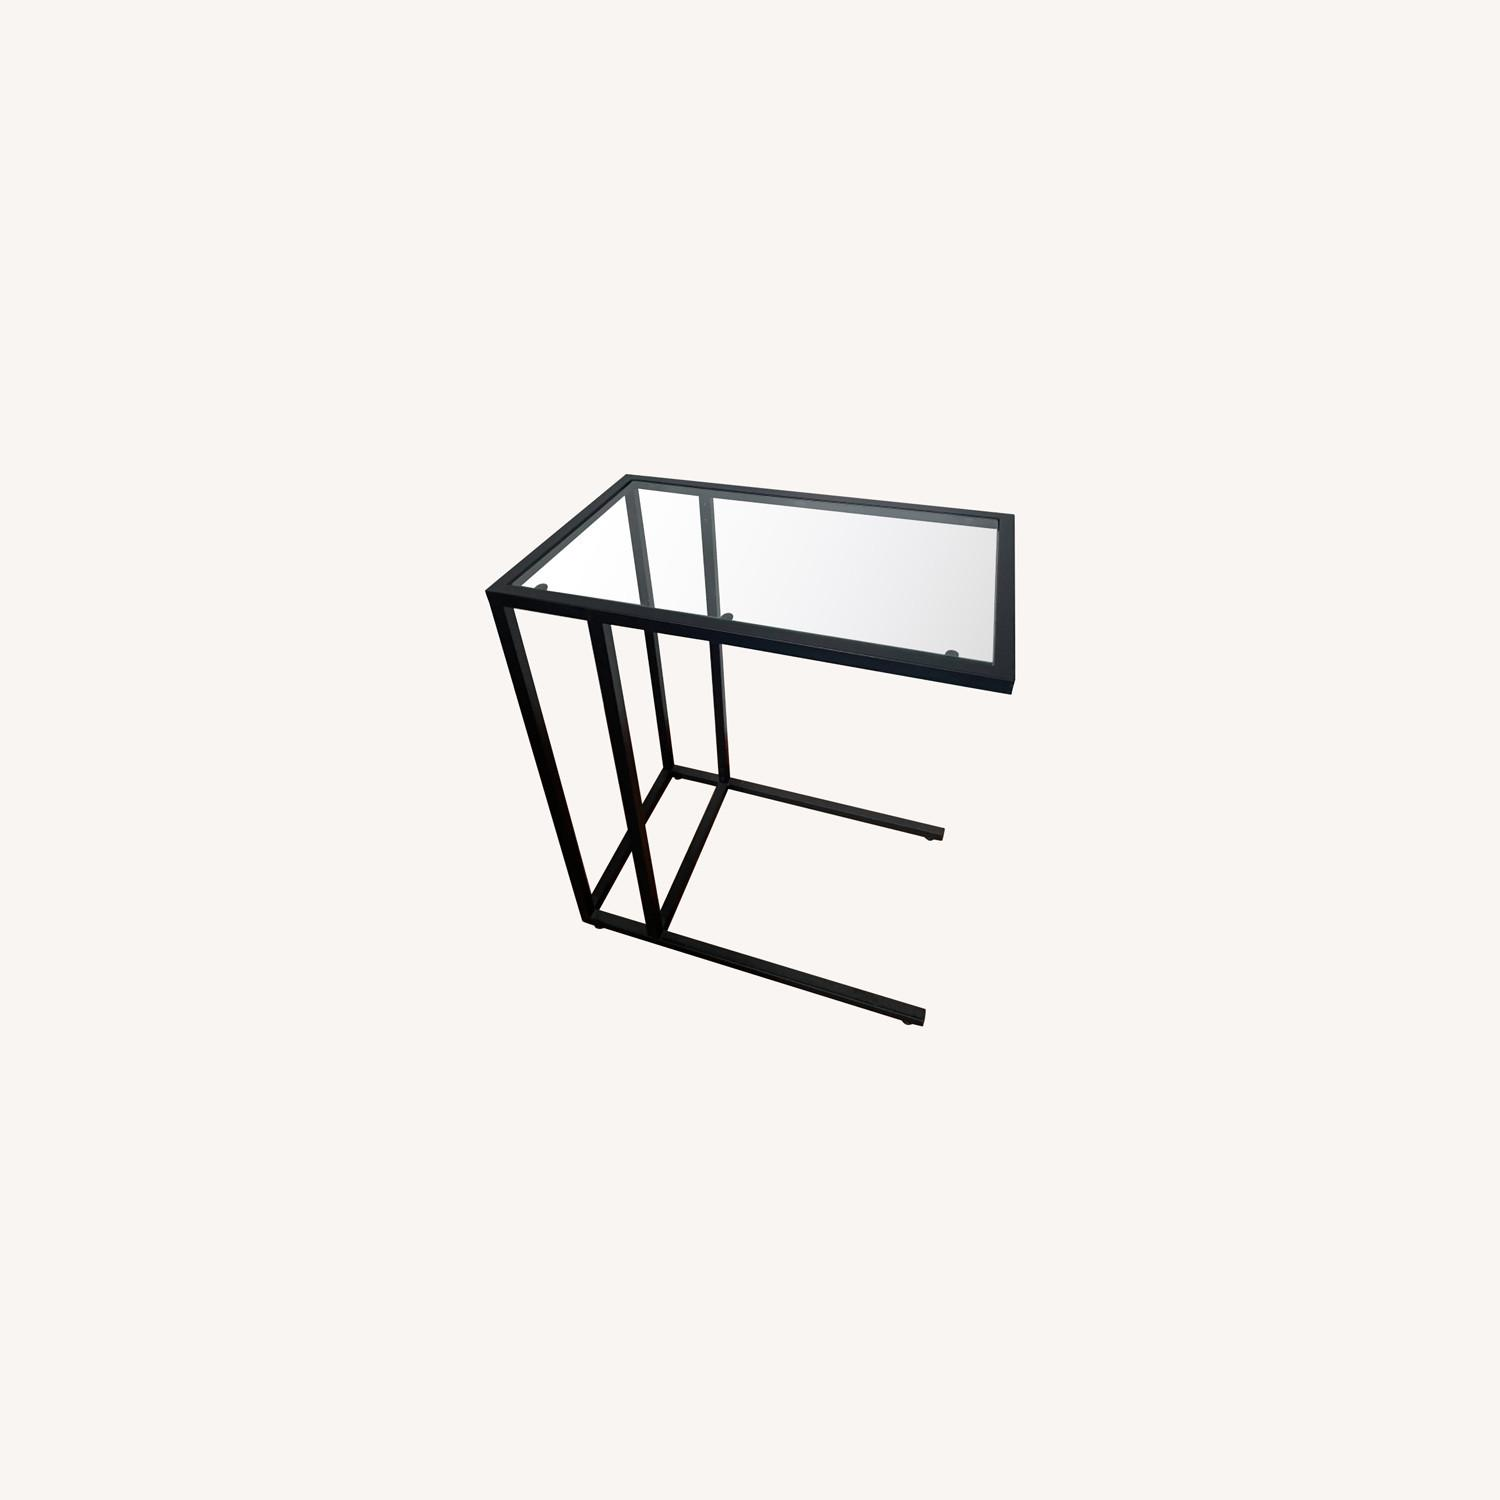 2 x Black Frame and Glass Side Tables - image-0